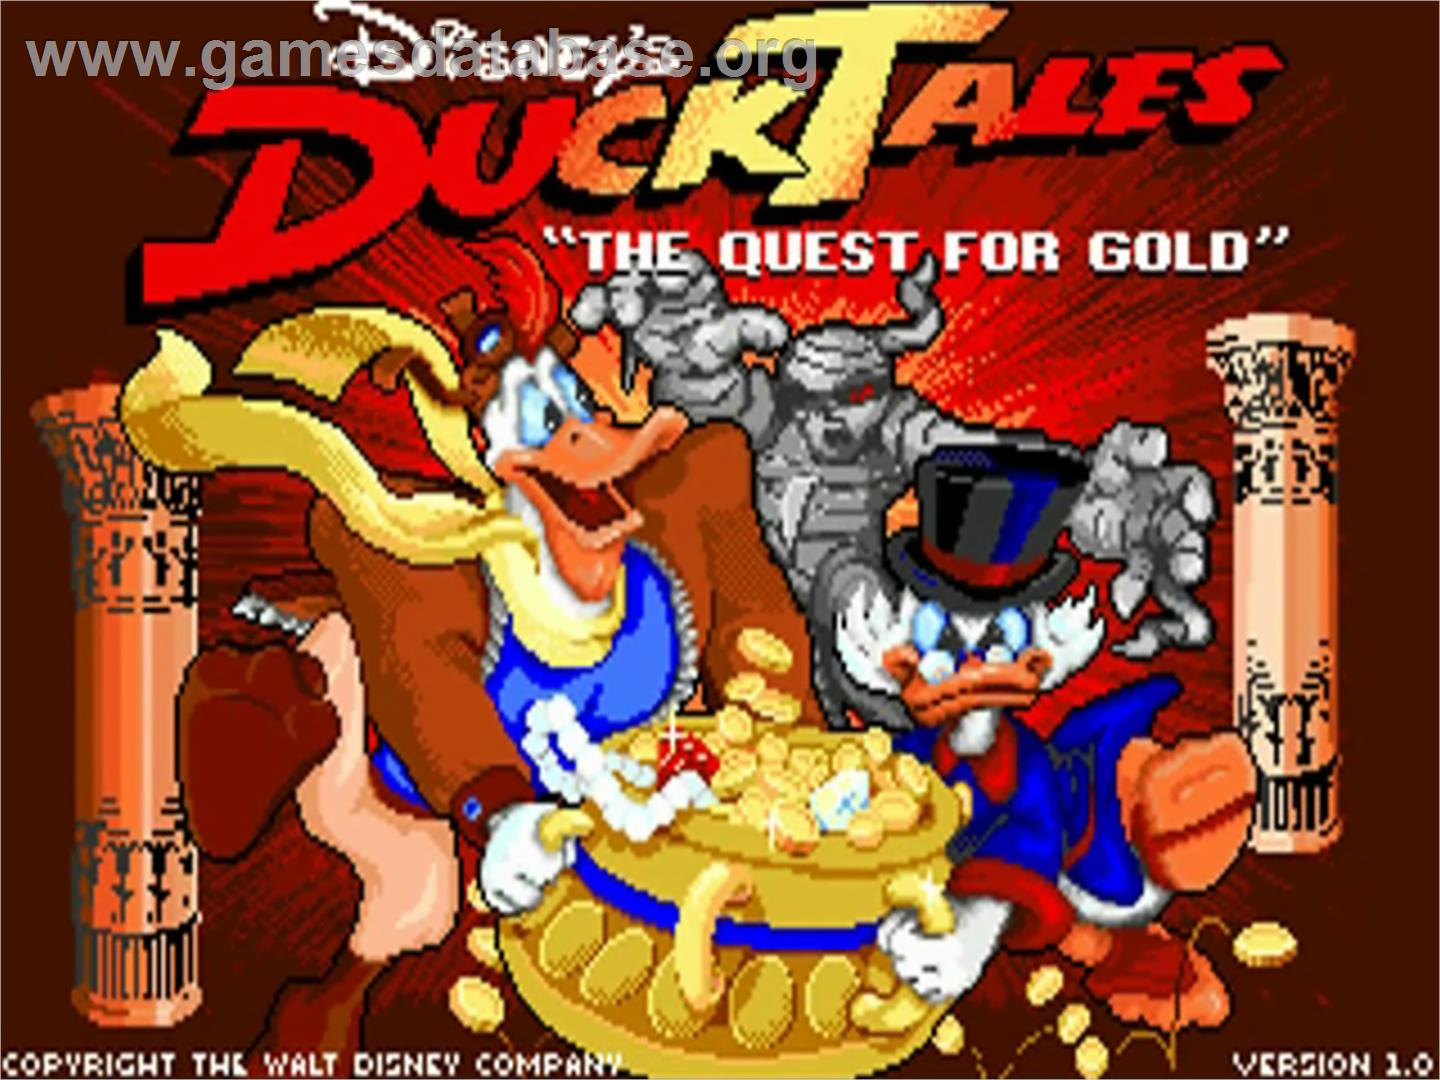 Duck Tales: The Quest for Gold - Commodore Amiga - Artwork - Title Screen